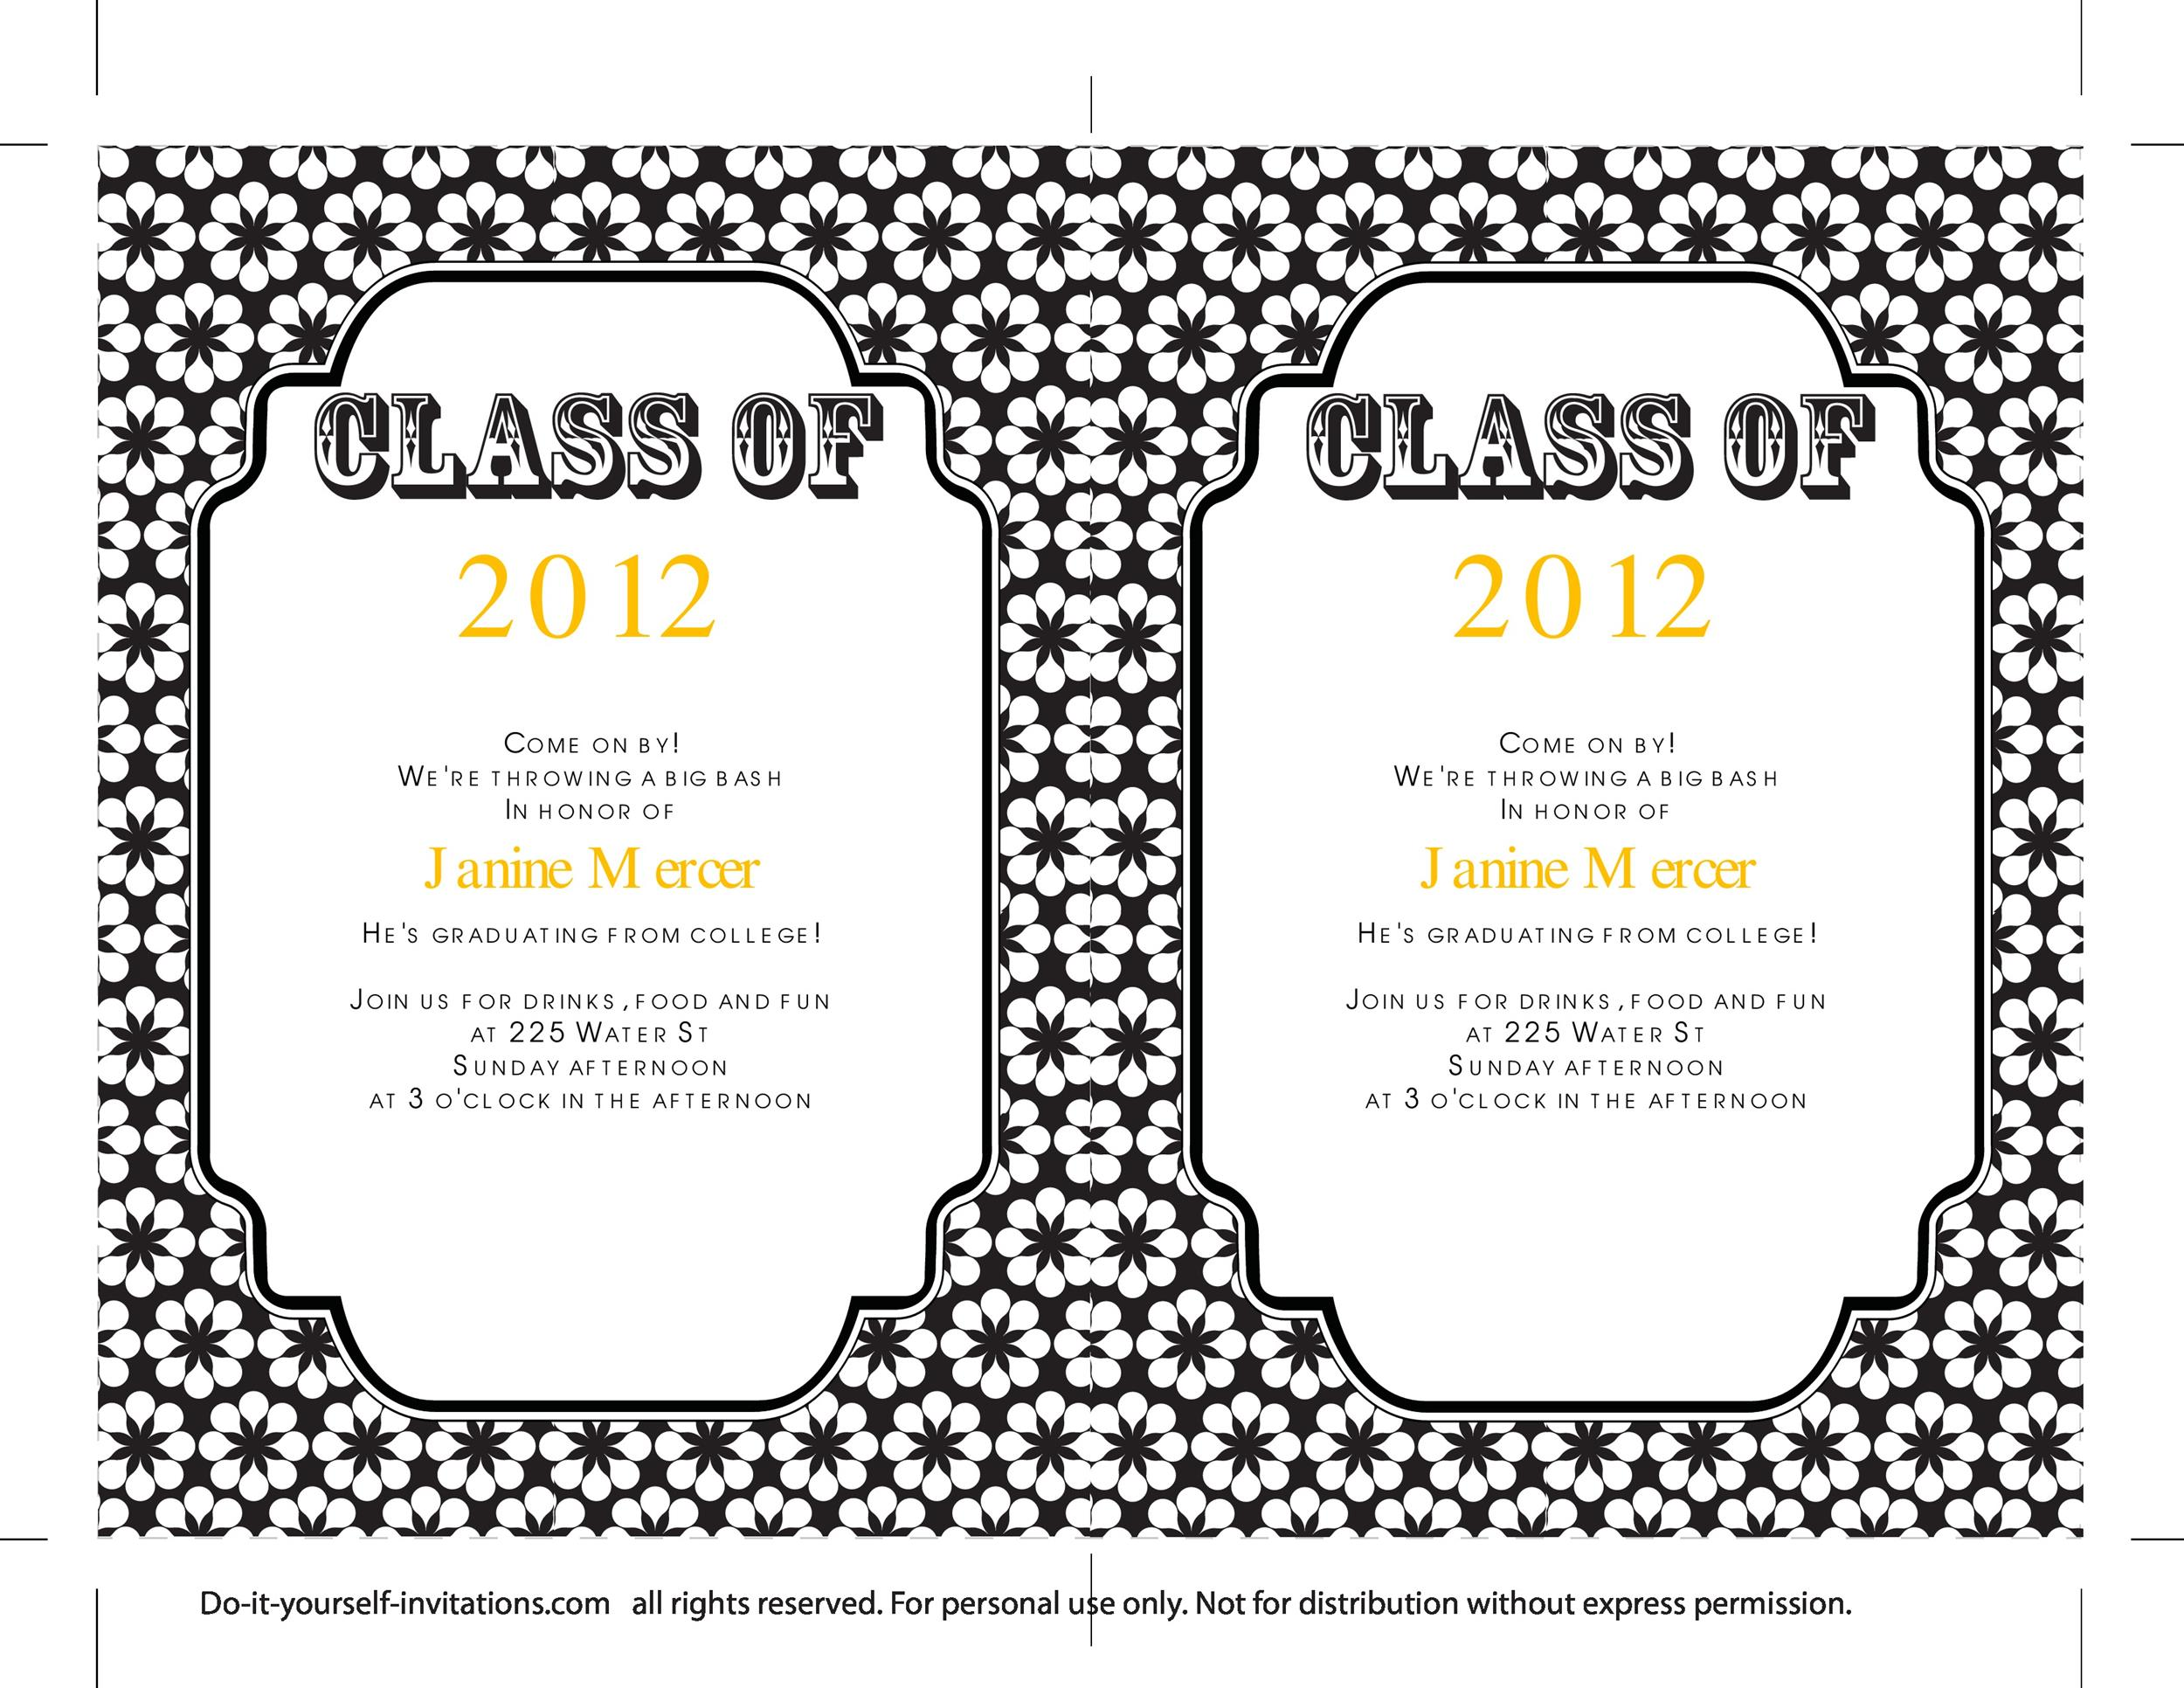 Free Graduation Announcement Templates | 40 Free Graduation Invitation Templates ᐅ Template Lab